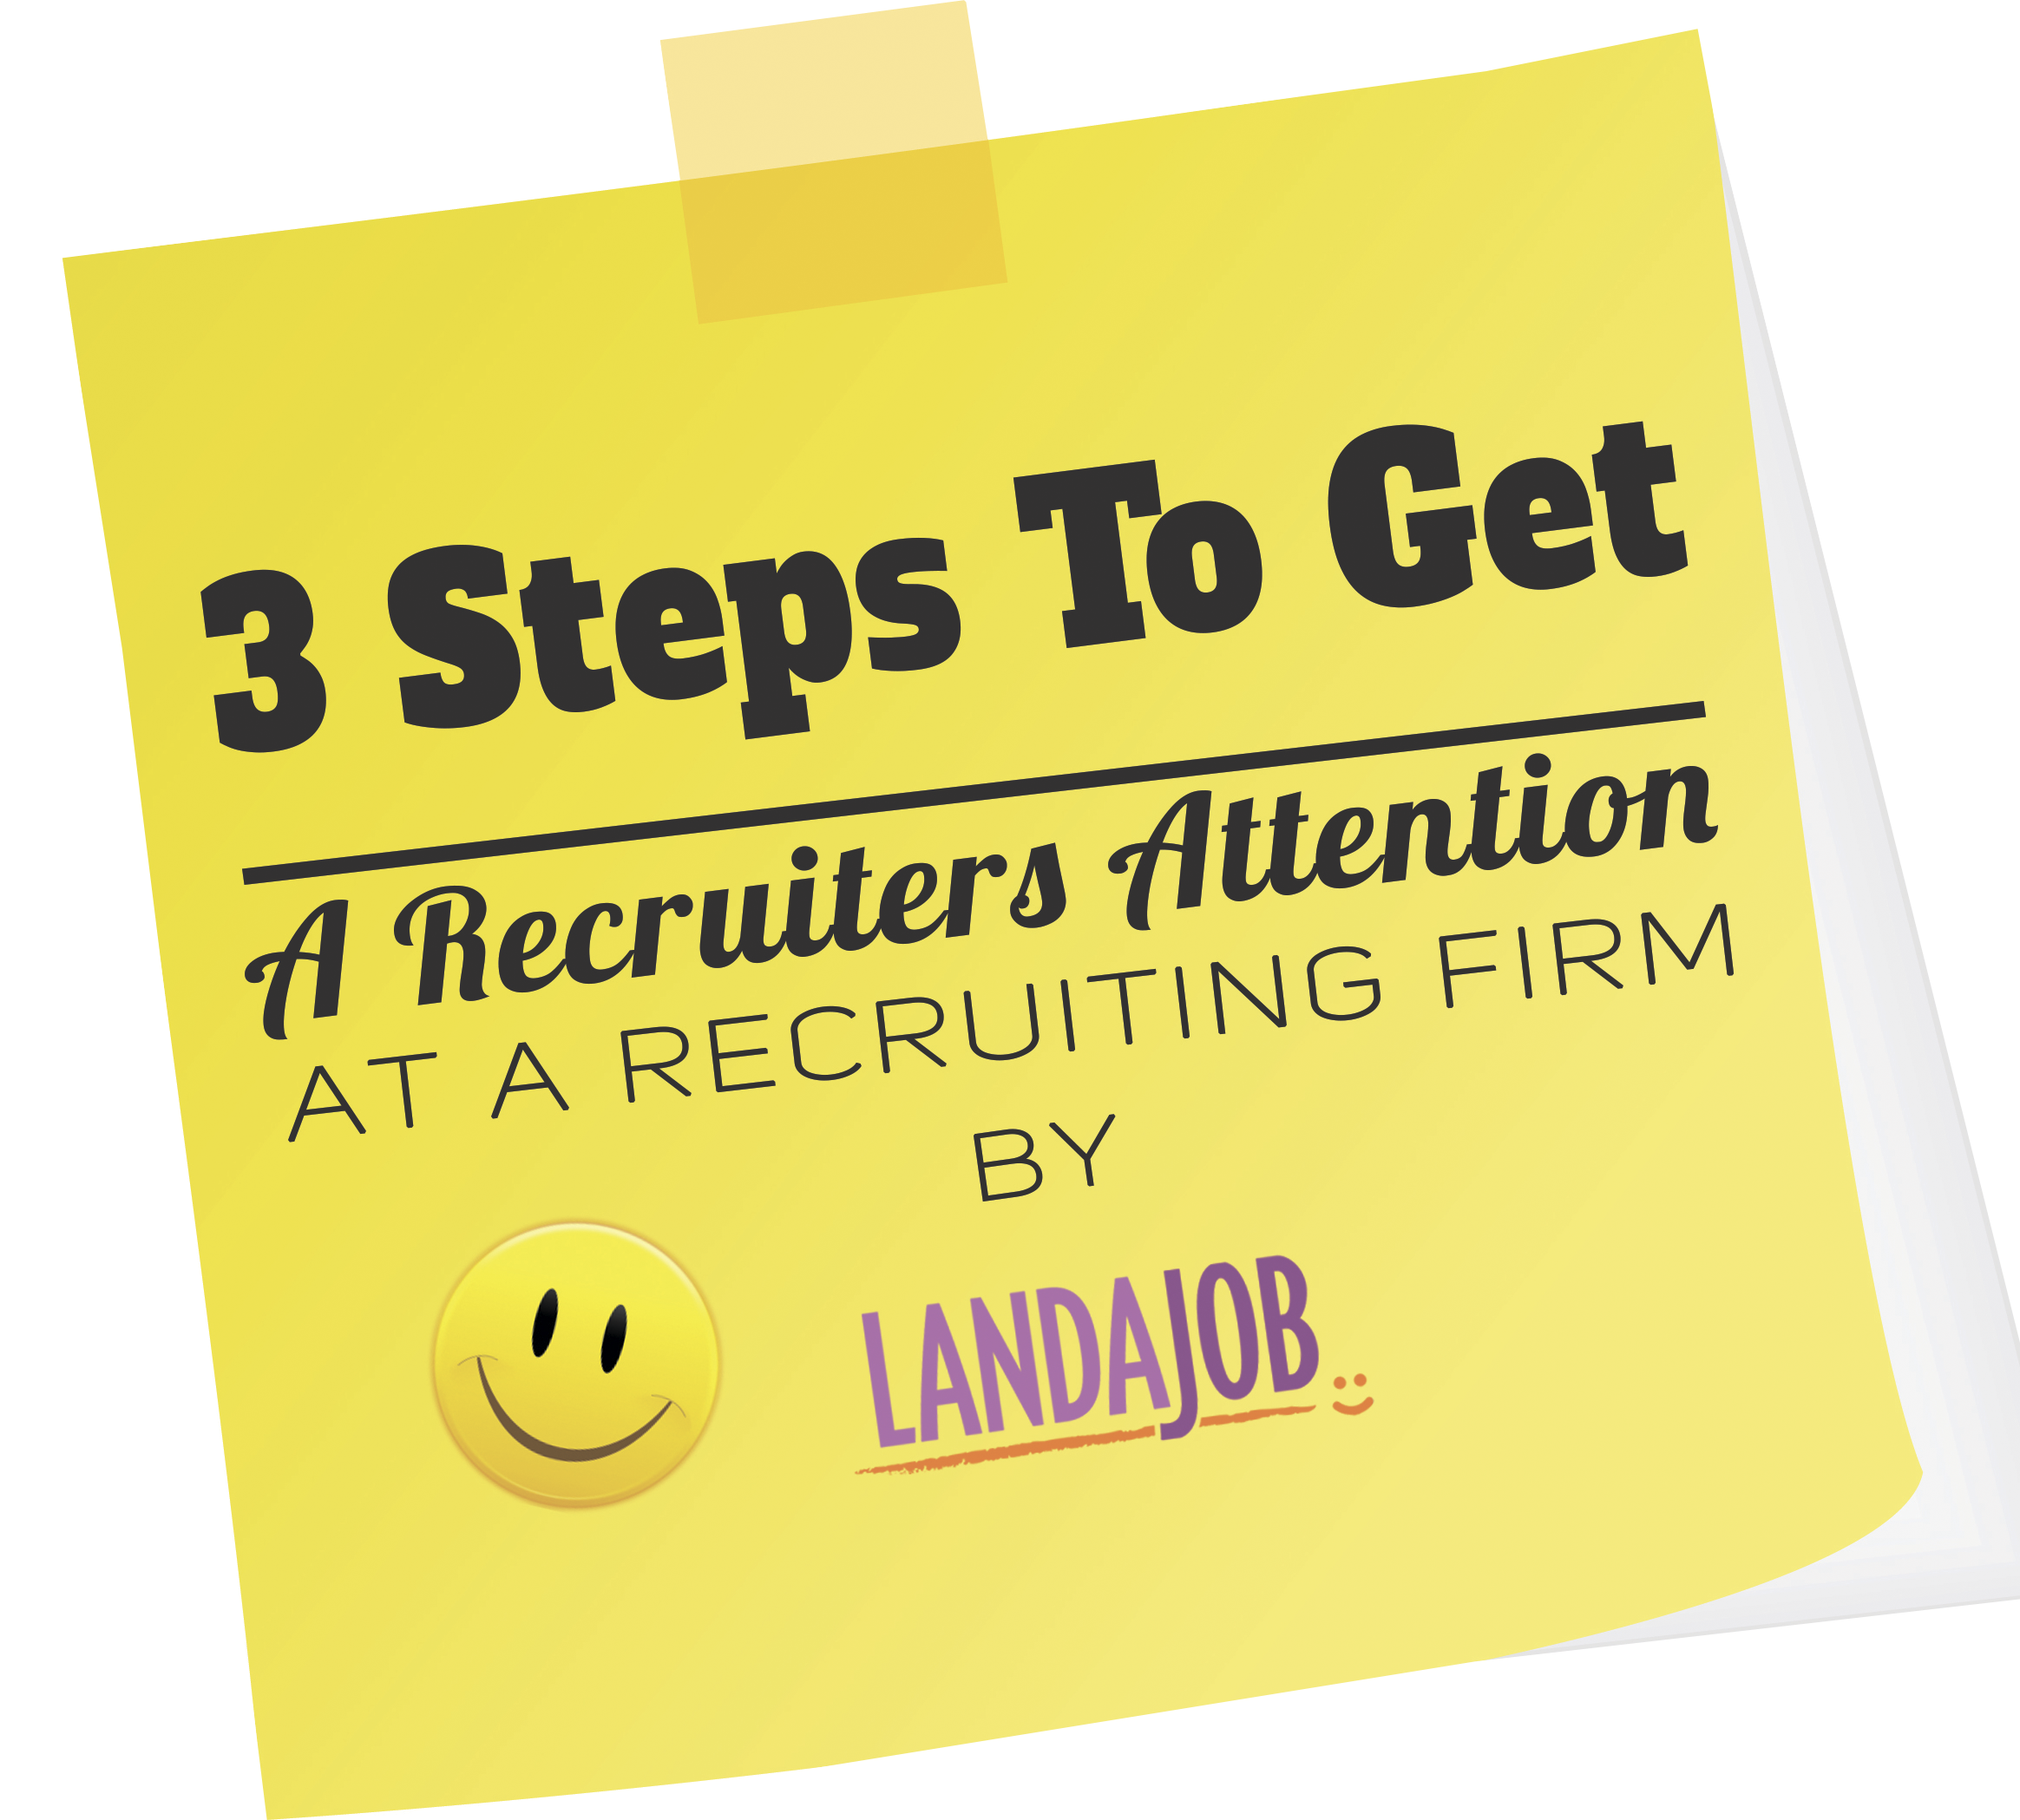 3 Steps To Get A Recruiters Attention at a Recruiting Firm